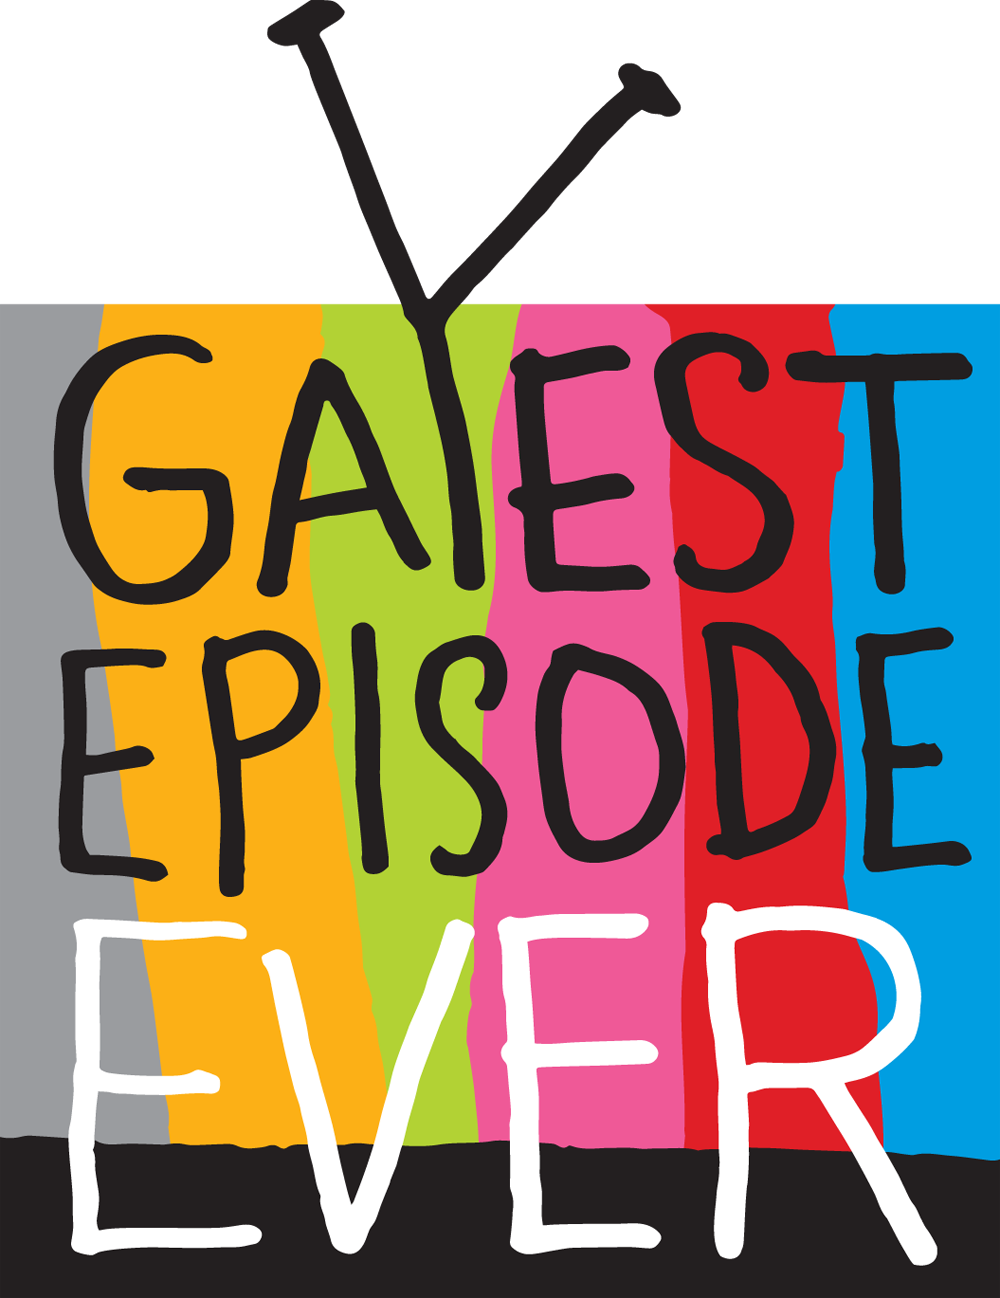 gayest-episode-ever-podcast.png